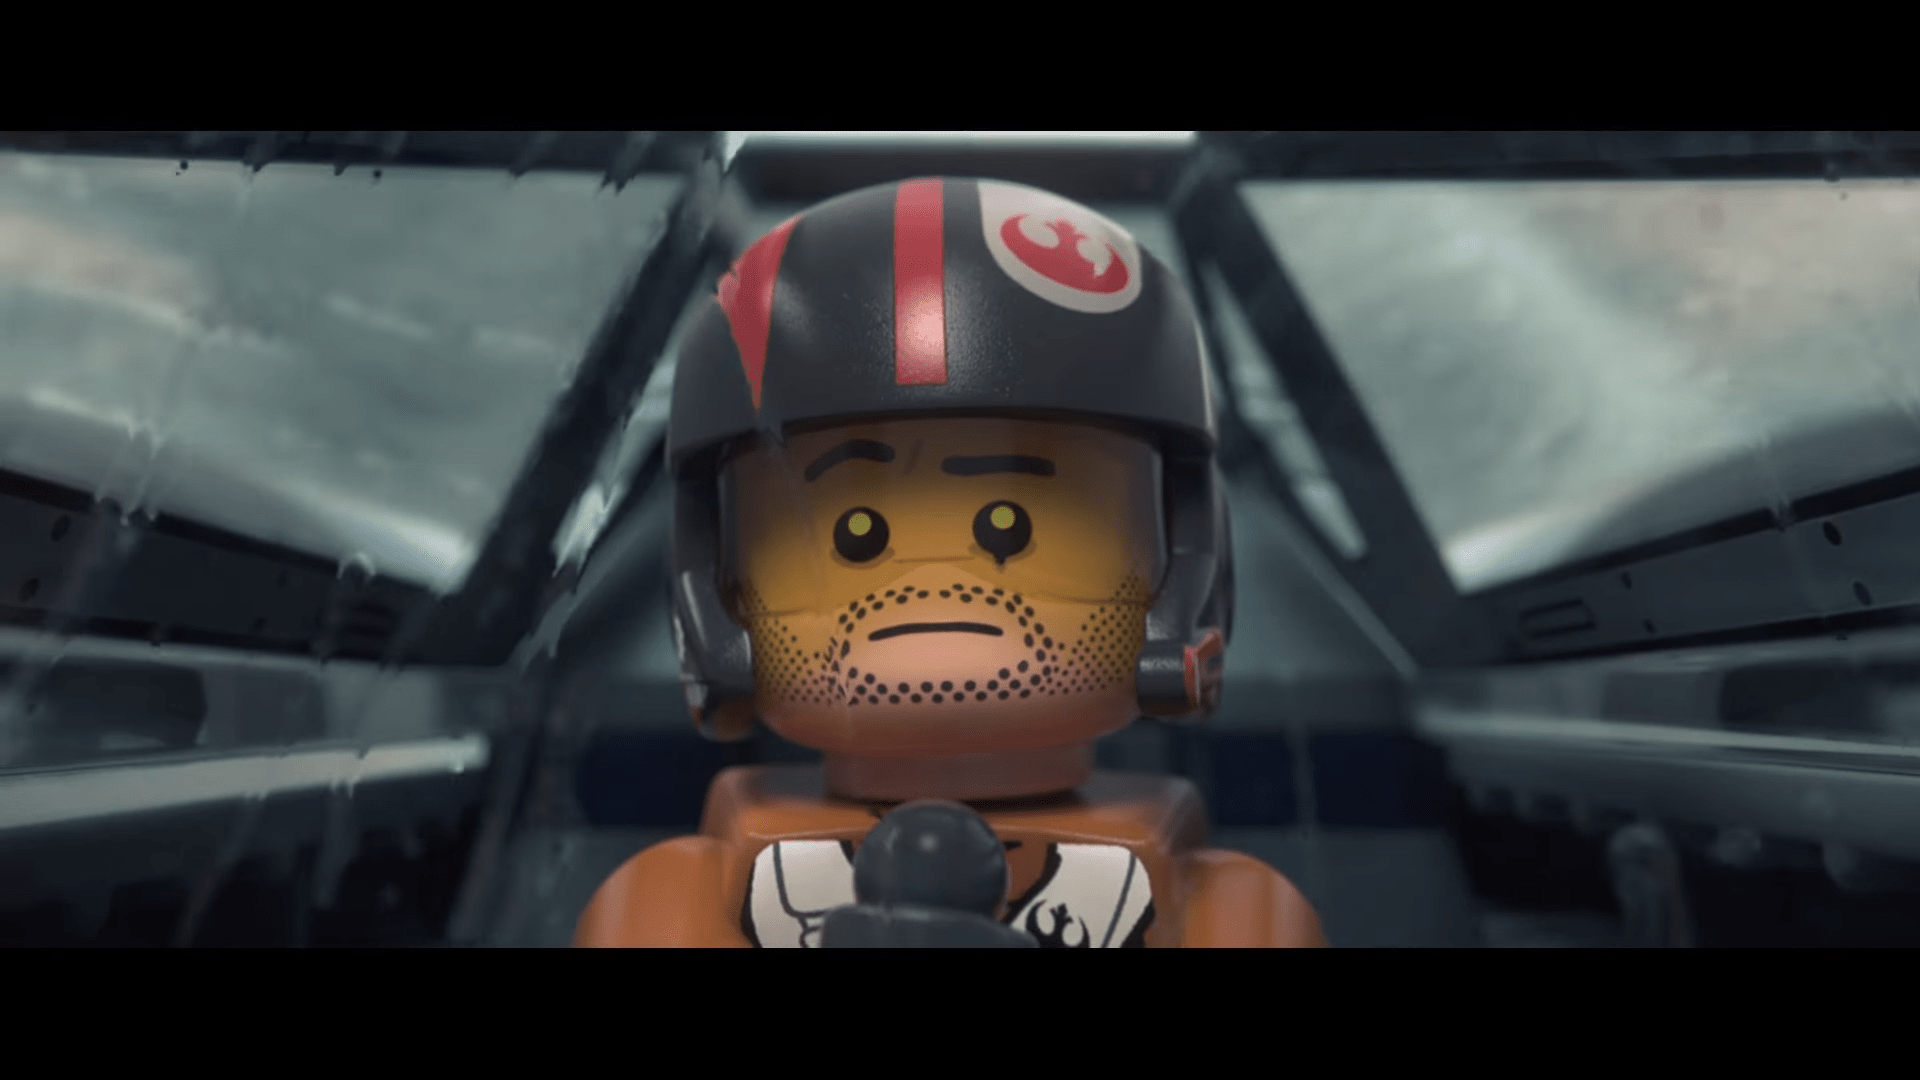 LEGO Star Wars: The Force Awakens HD pics